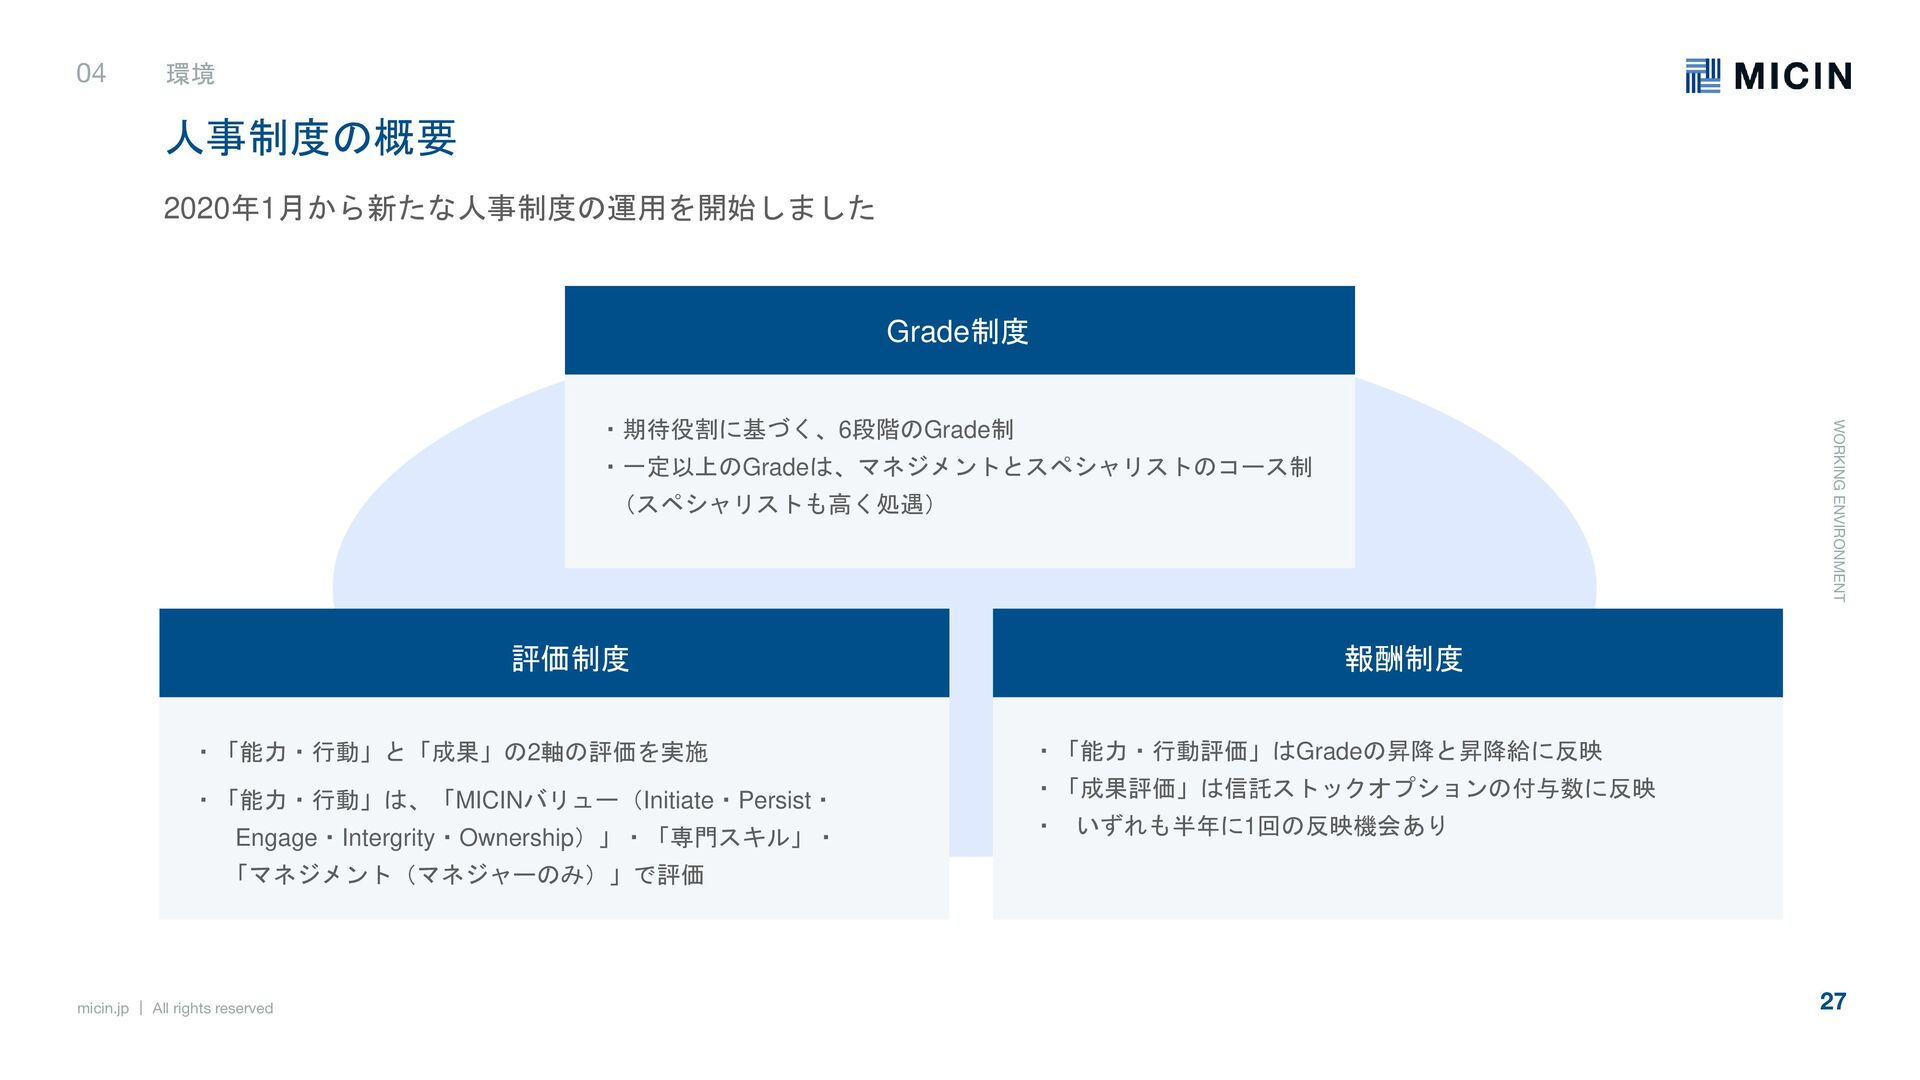 micin.jp   All rights reserved 27 働く環境 04 一人ひとり...